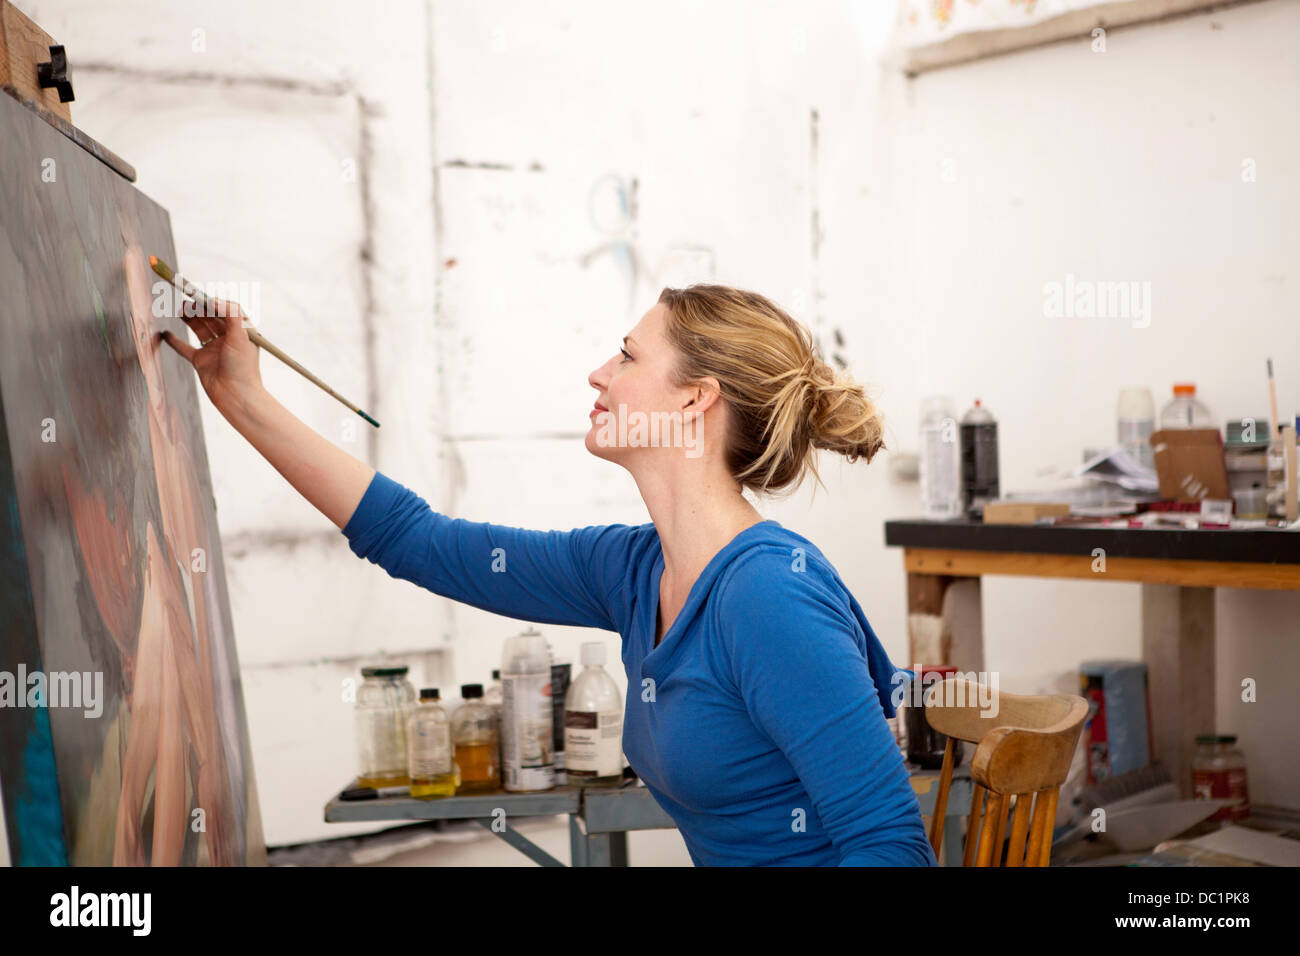 Mid adult woman painting on canvas in artist's studio - Stock Image